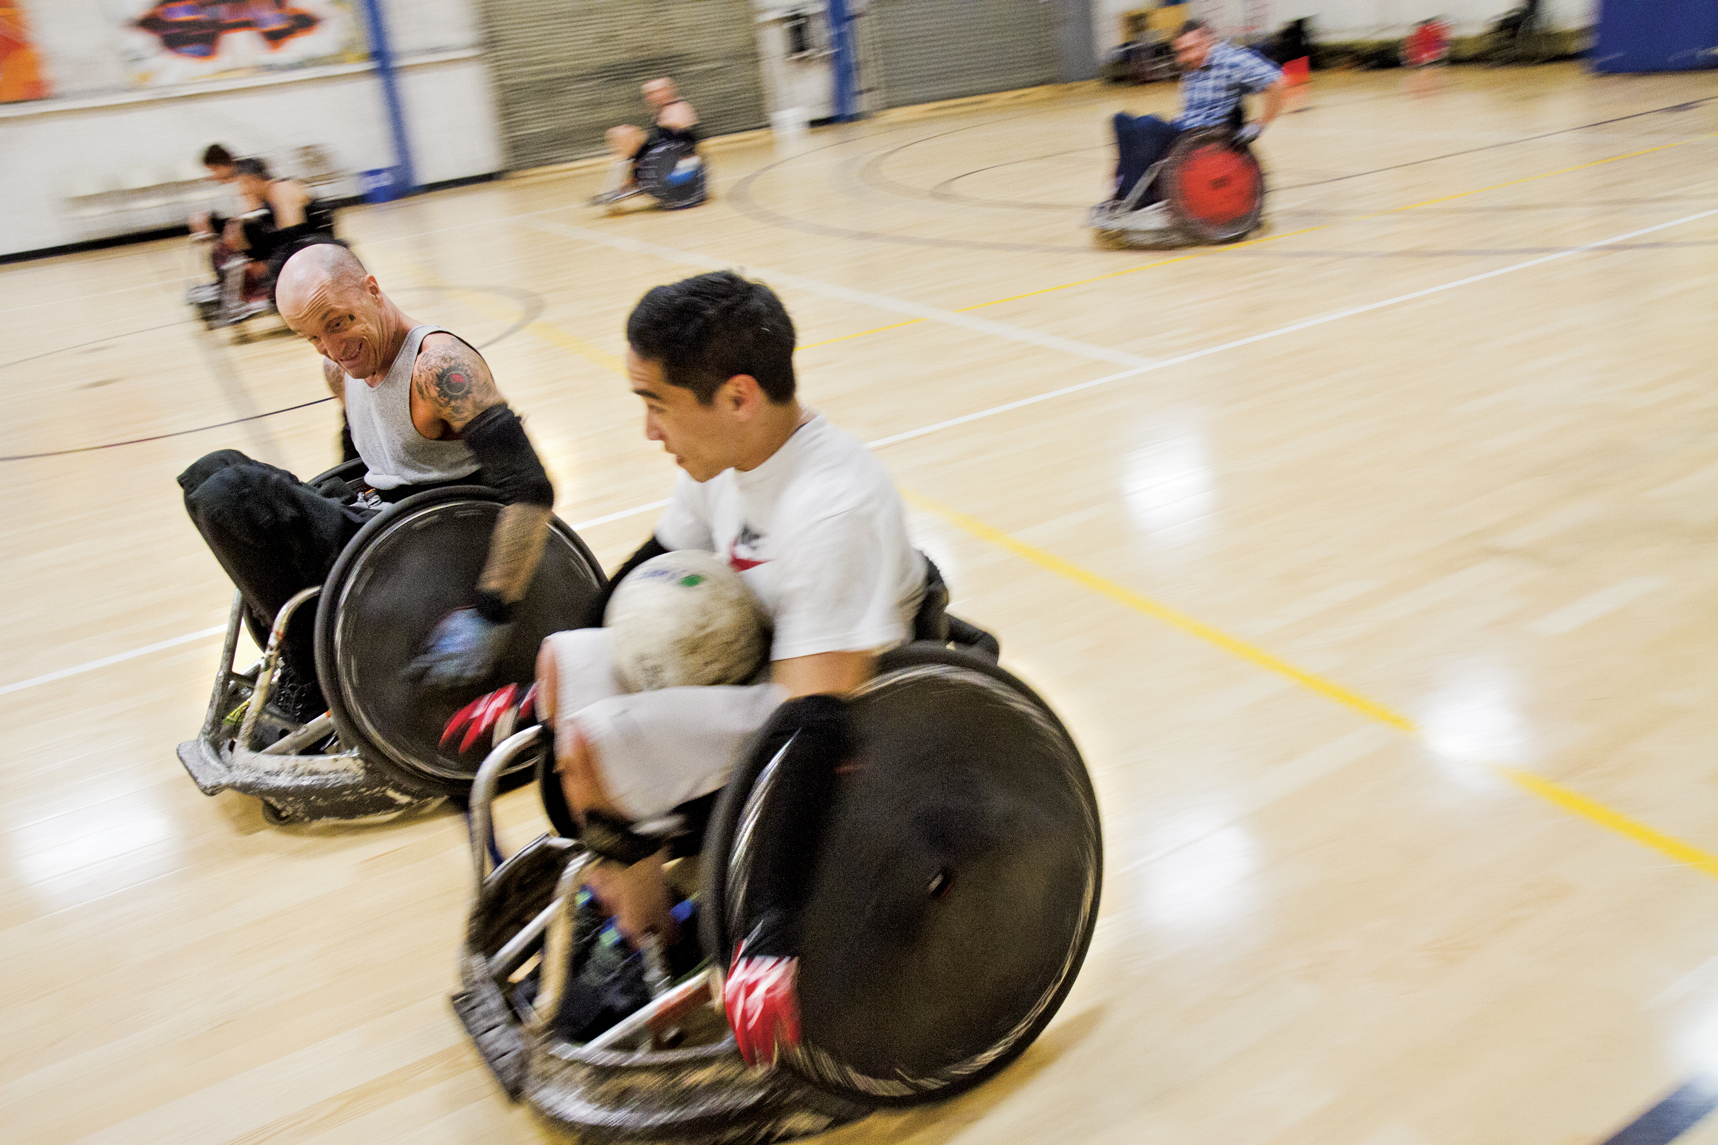 Paraplegic rugby player Scott Pope tries to get the ball from Steven Toyoji during a scrimmage at the Riekes Center.